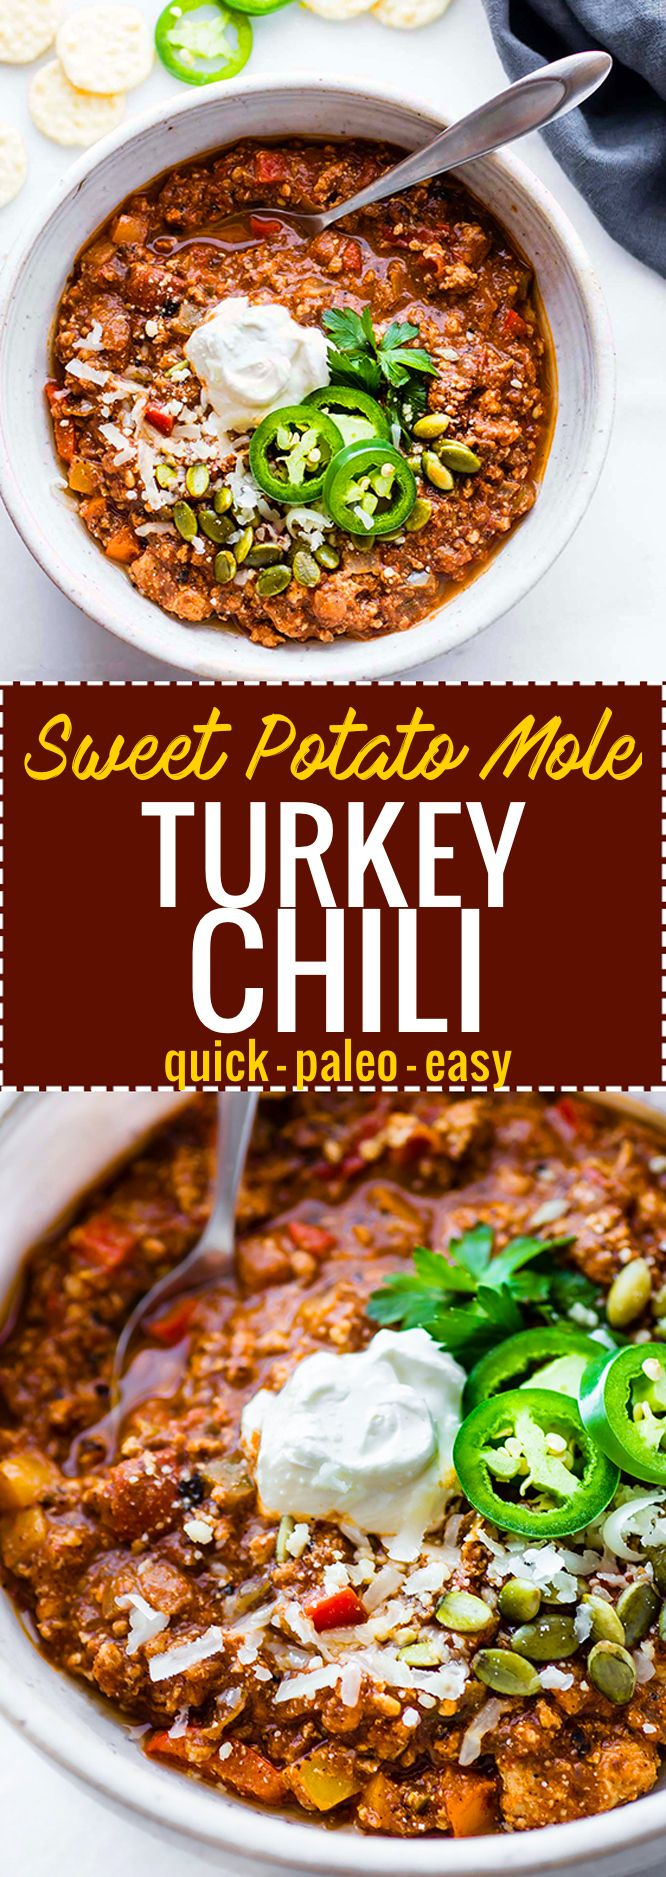 Quick Sweet Potato Mole Turkey that's Paleo friendly, simple to make, and healthy! A hearty Turkey chili made with an easy homemade sweet potato mole sauce. Great to feed a crowd, for meal prep, or to use up those holiday leftovers.